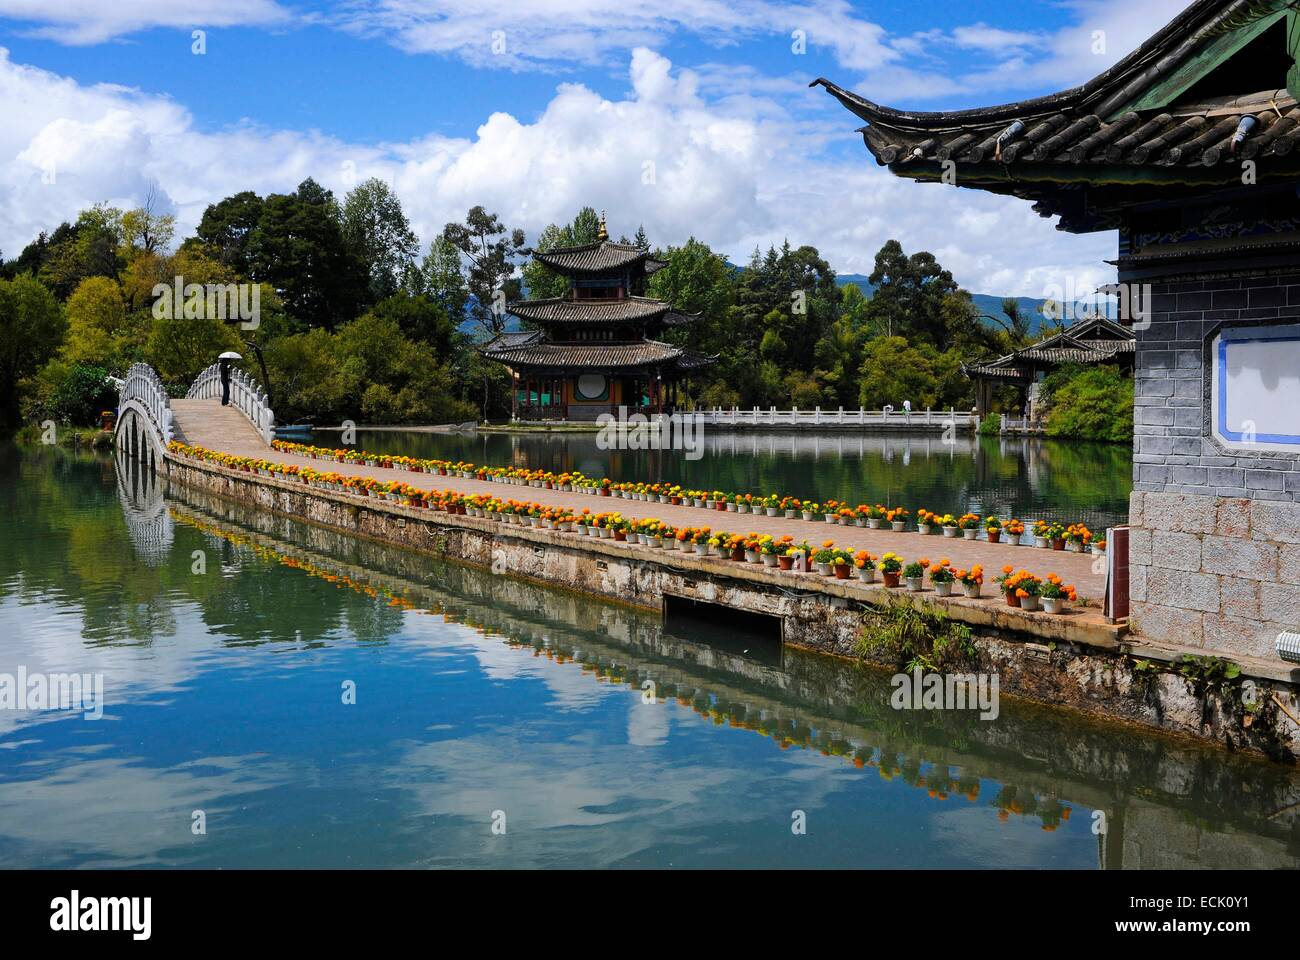 China, Yunnan Province, Lijiang, Black dragon's park - Stock Image